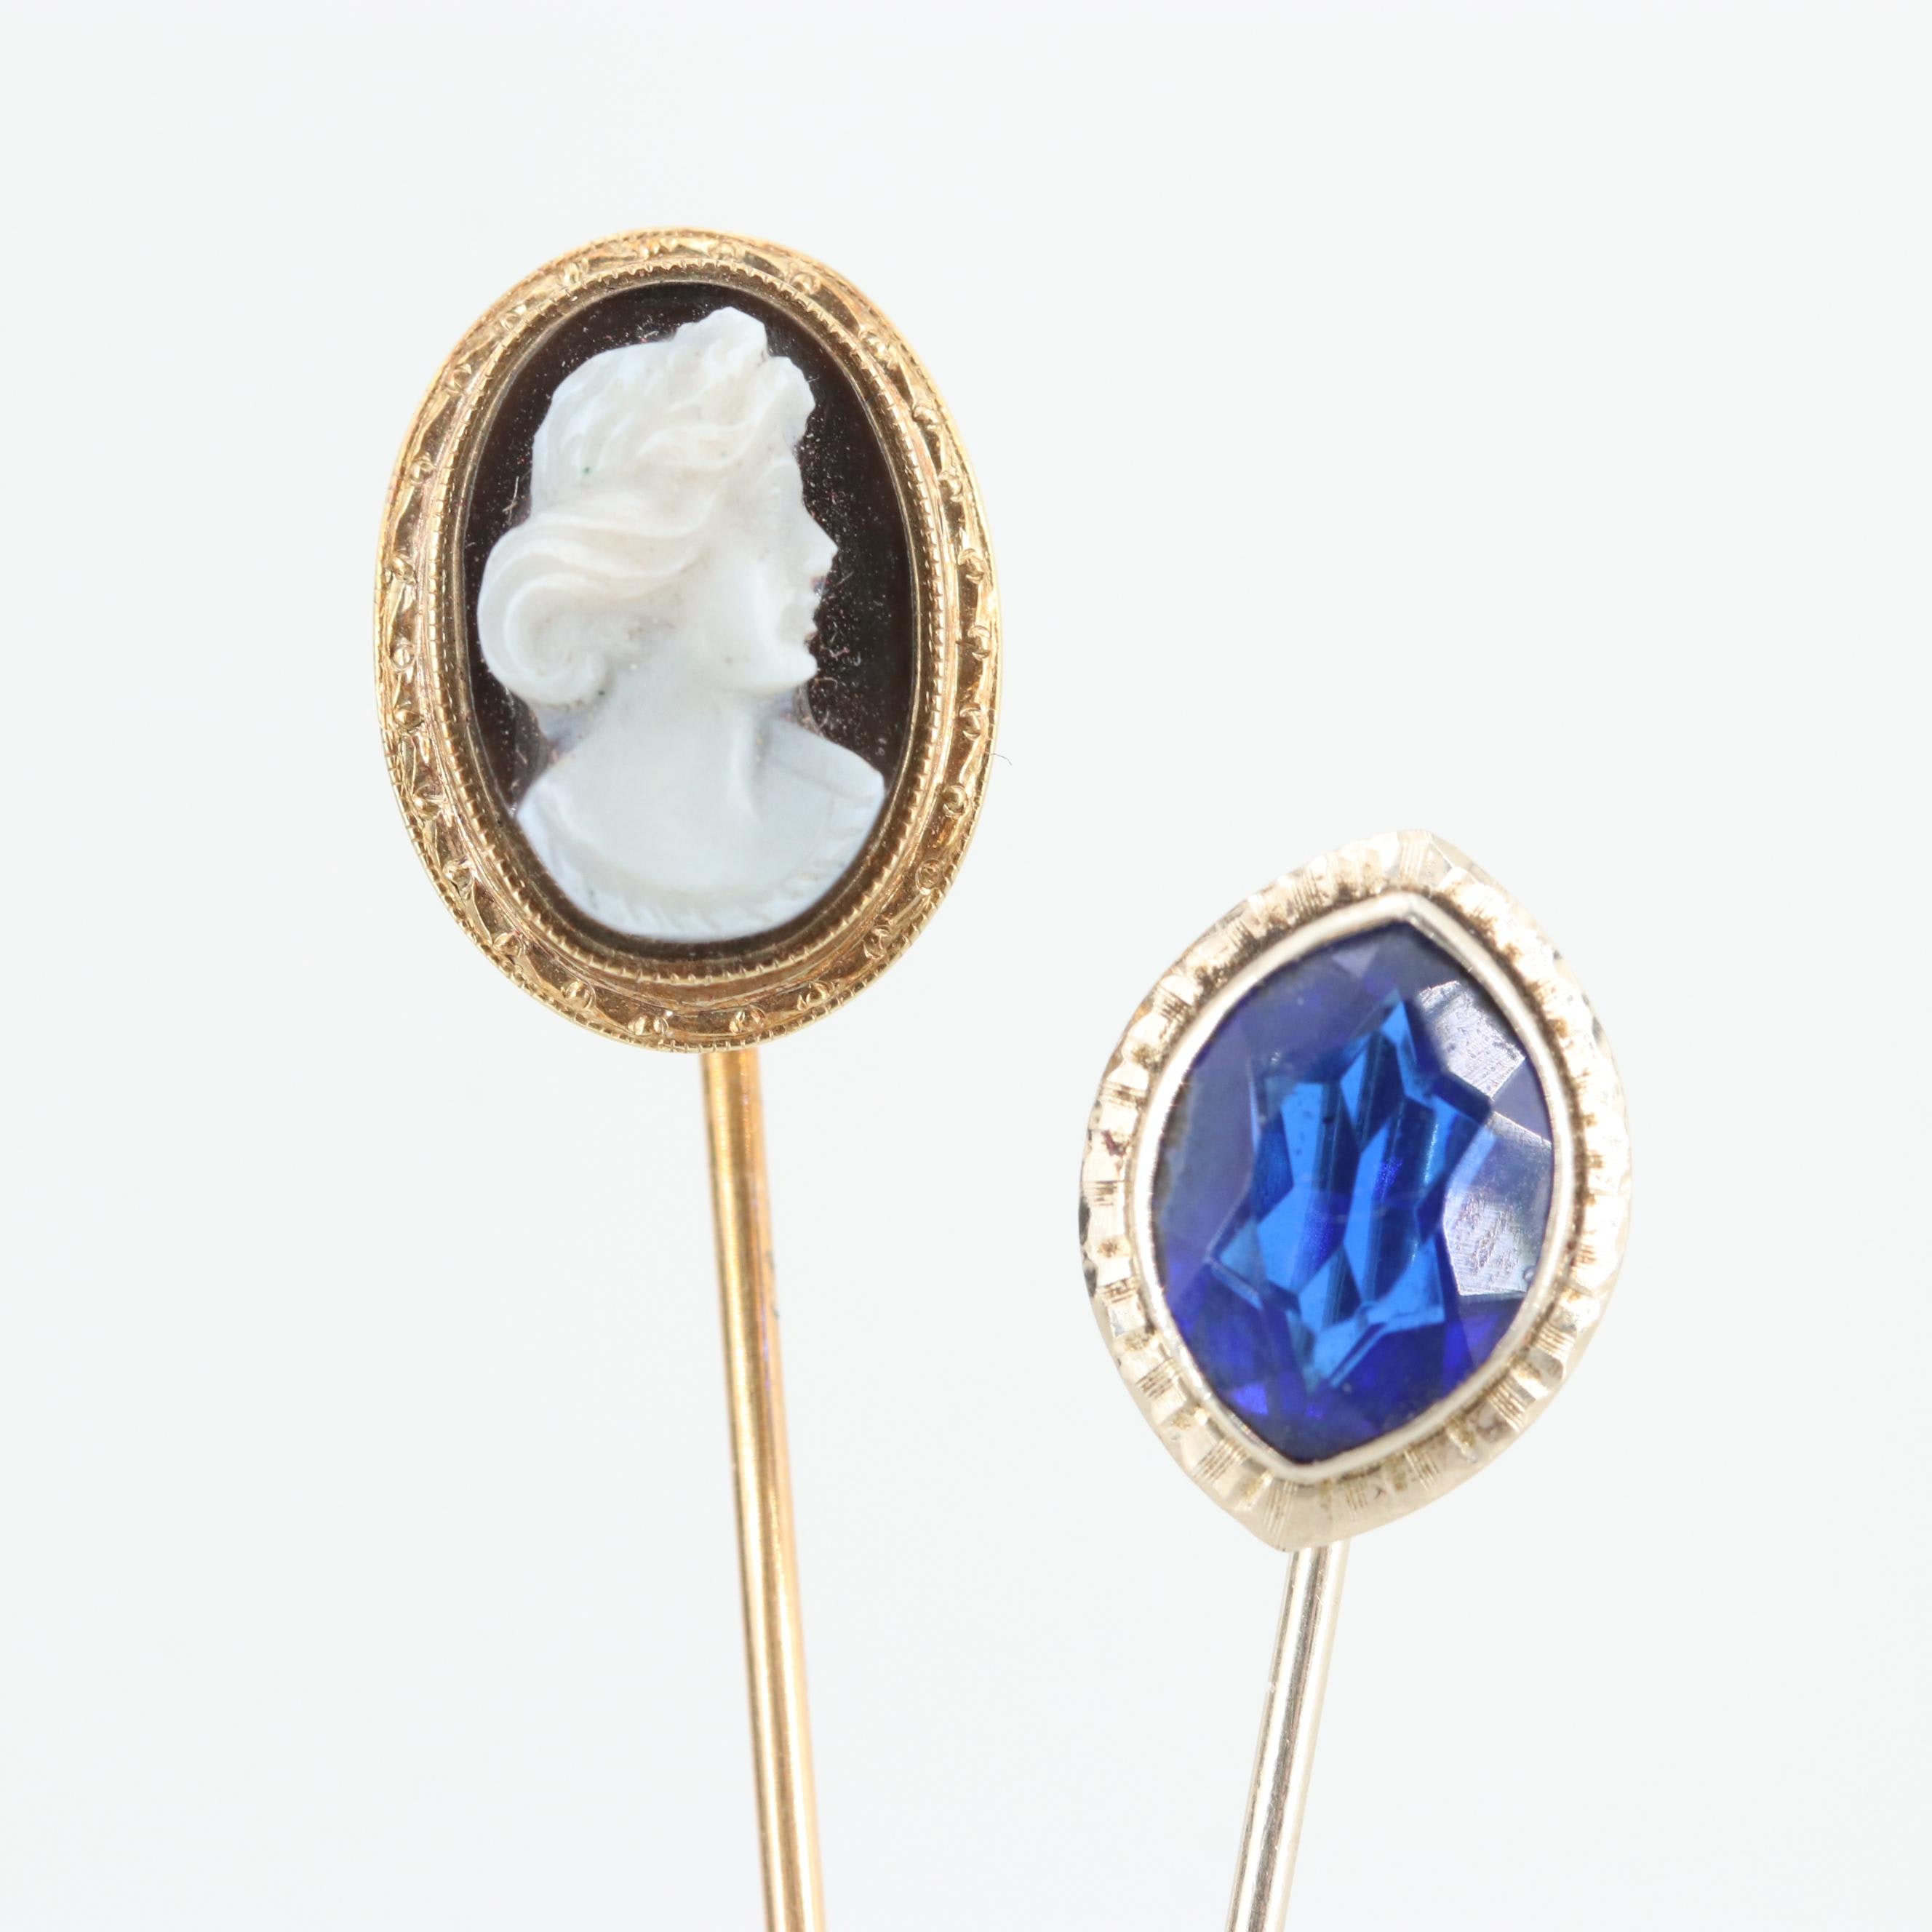 Circa 1920s - 1930s 14K Yellow and White Gold Onyx and Glass Stick Pins